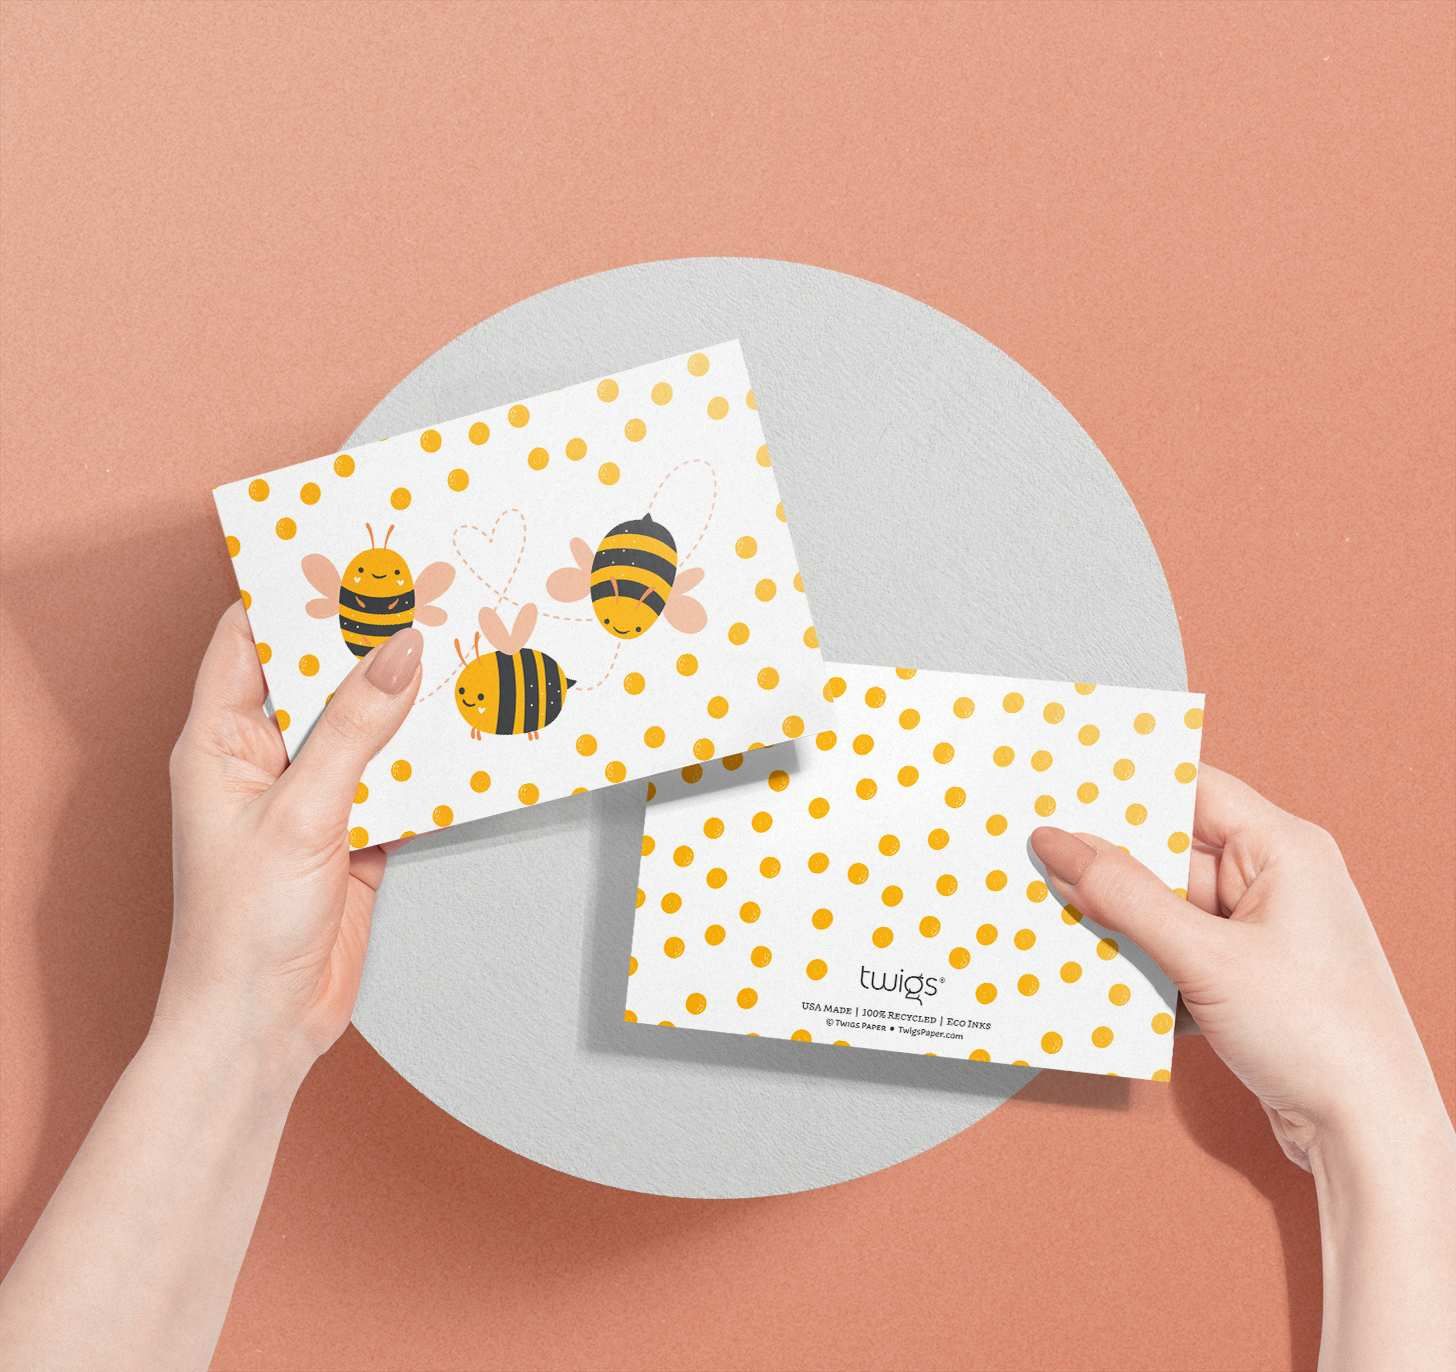 Woman's hands holding bumble bee trio design